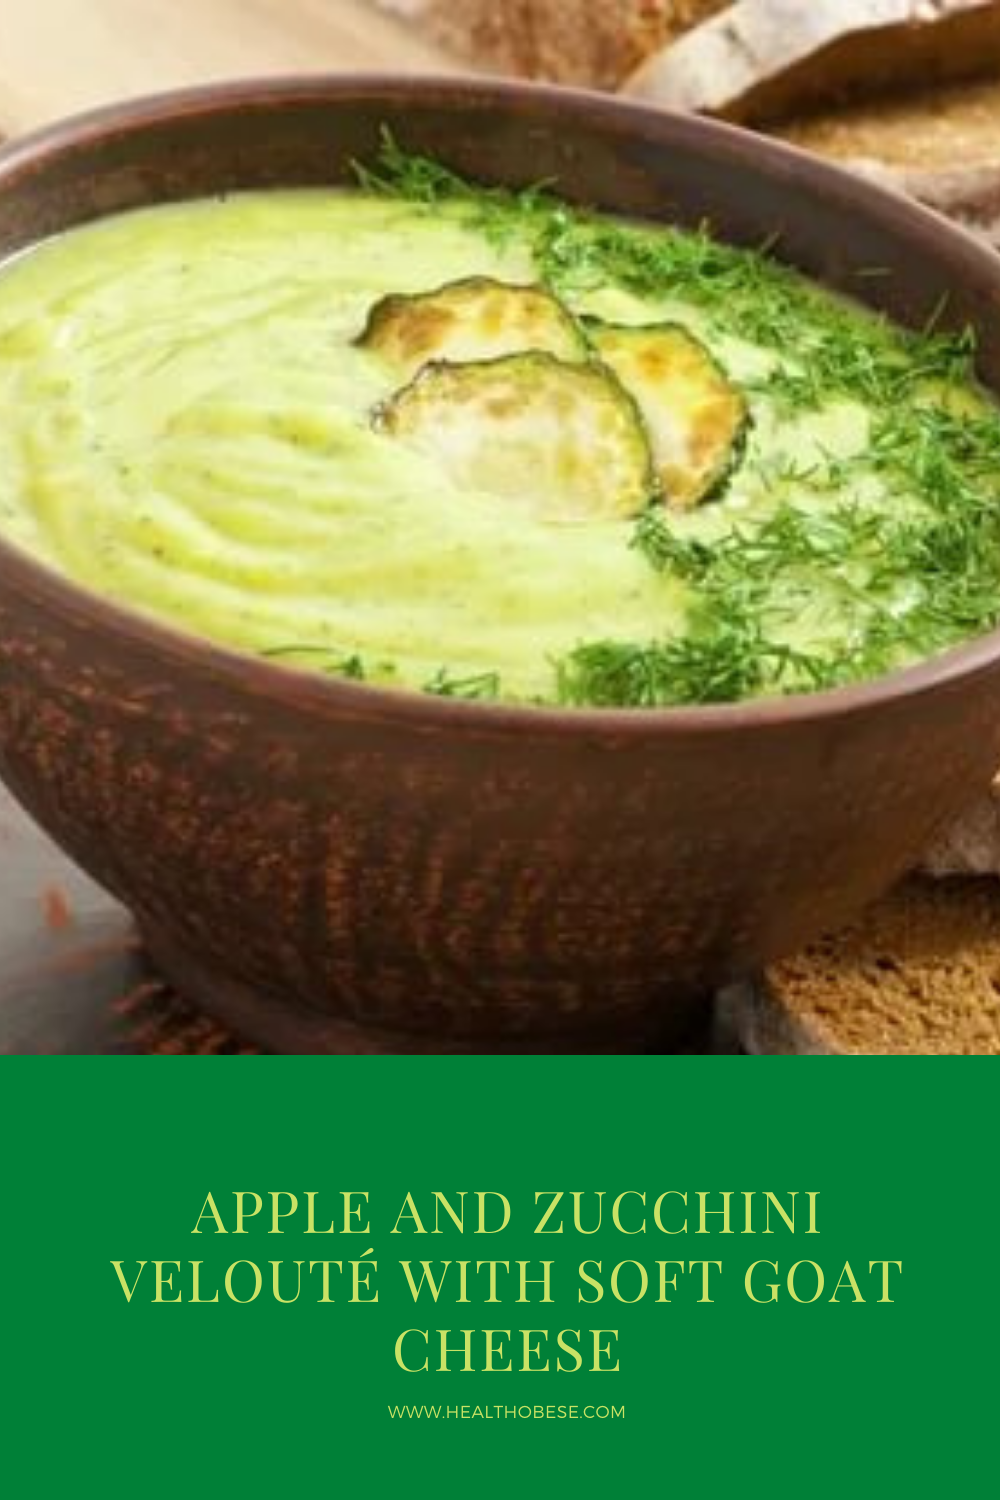 Apple and zucchini velouté with soft goat cheese